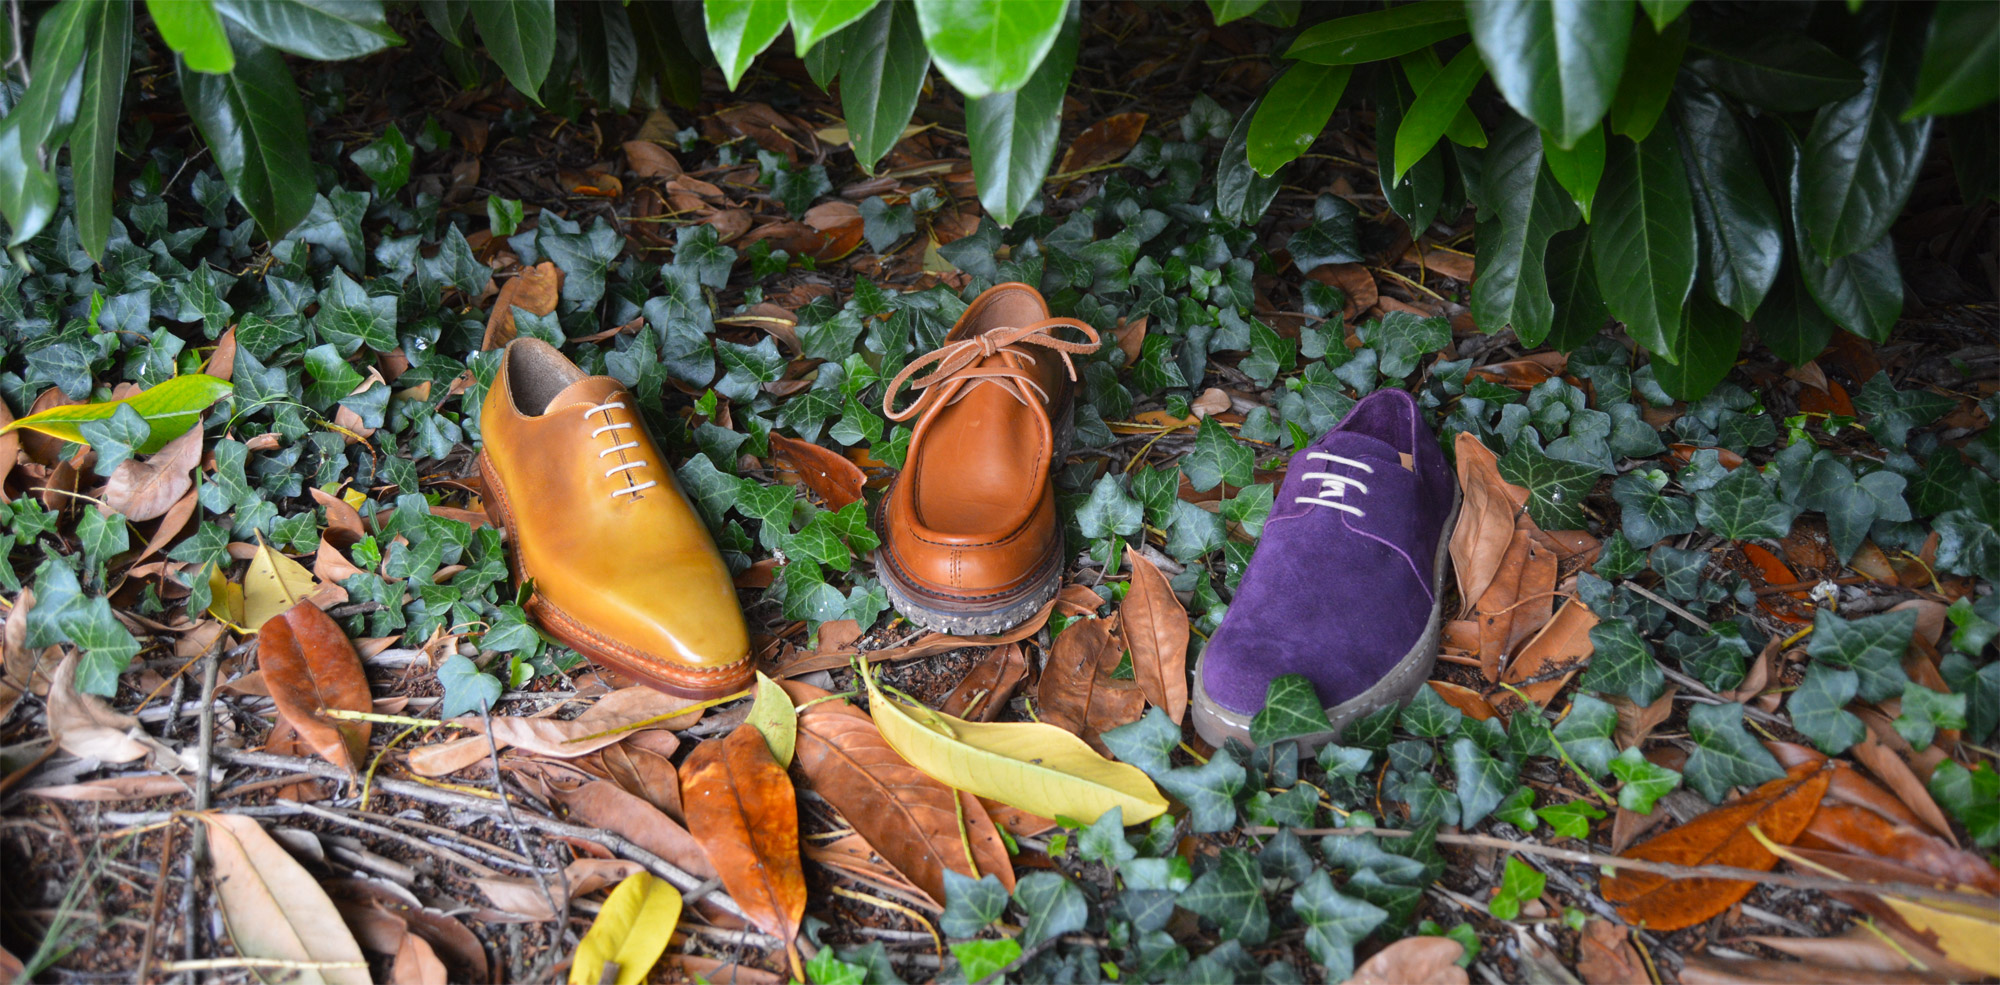 Creation of 100% French luxury shoes respecting the environment